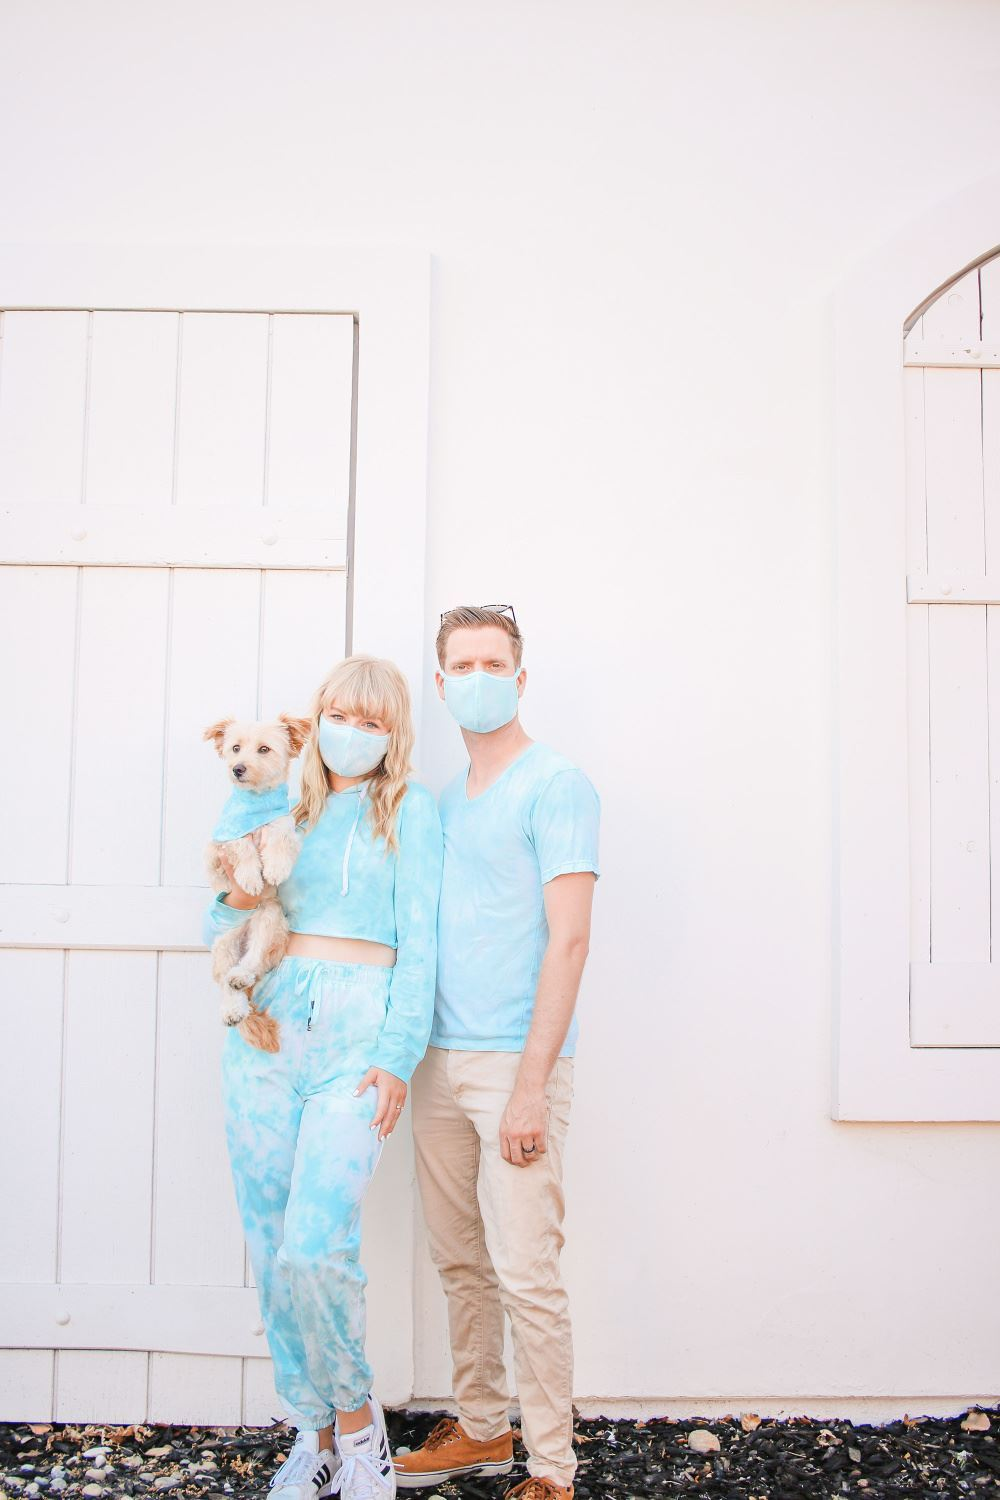 Matching tie-dye sweatsuit and face masks